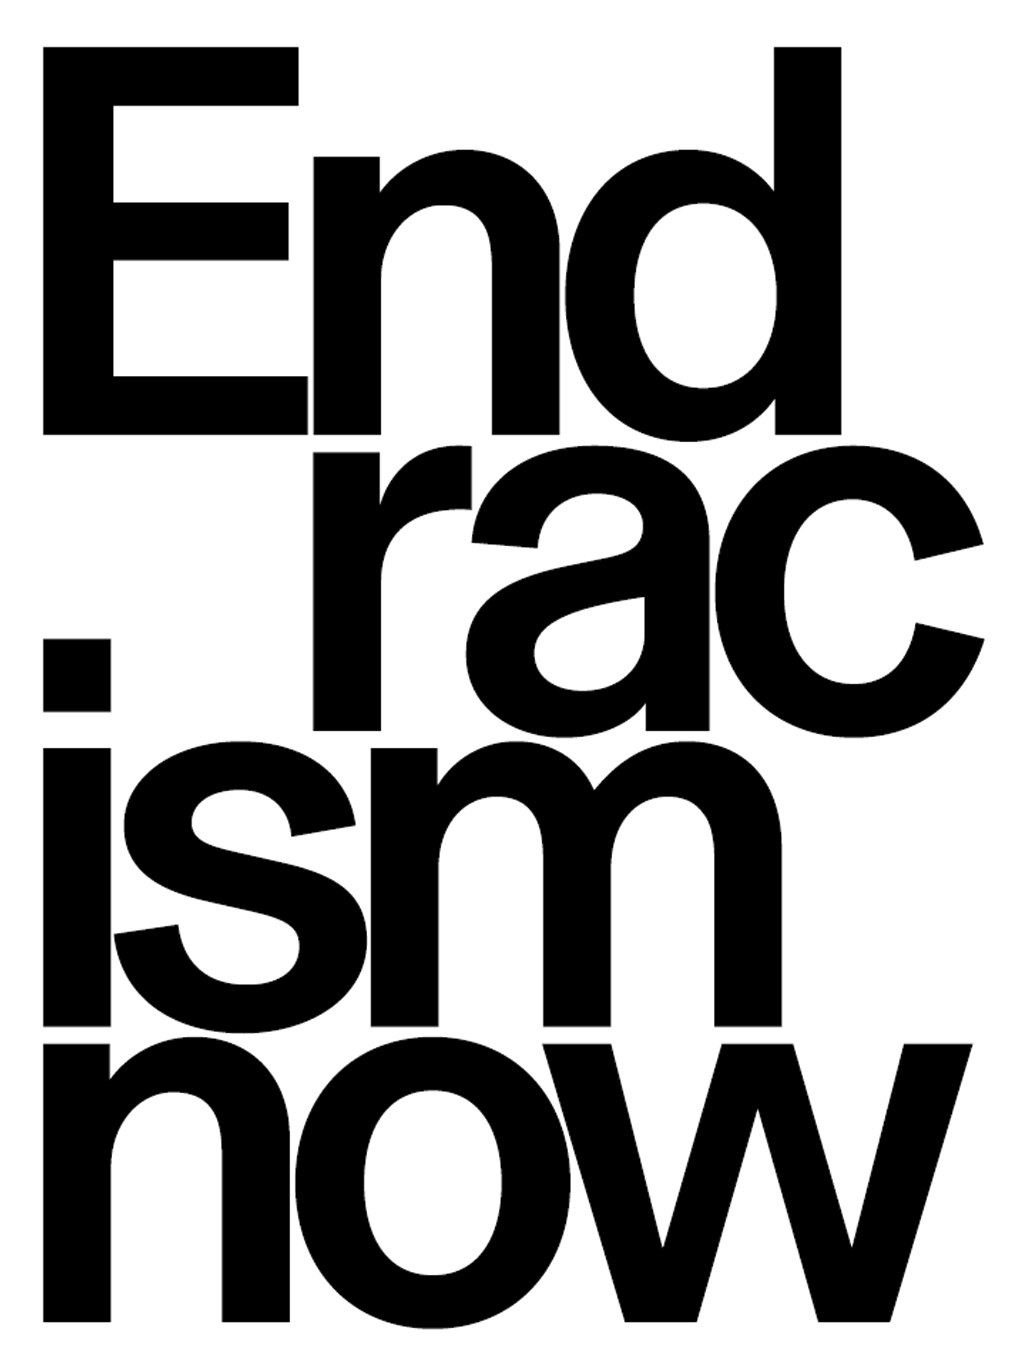 End racism now